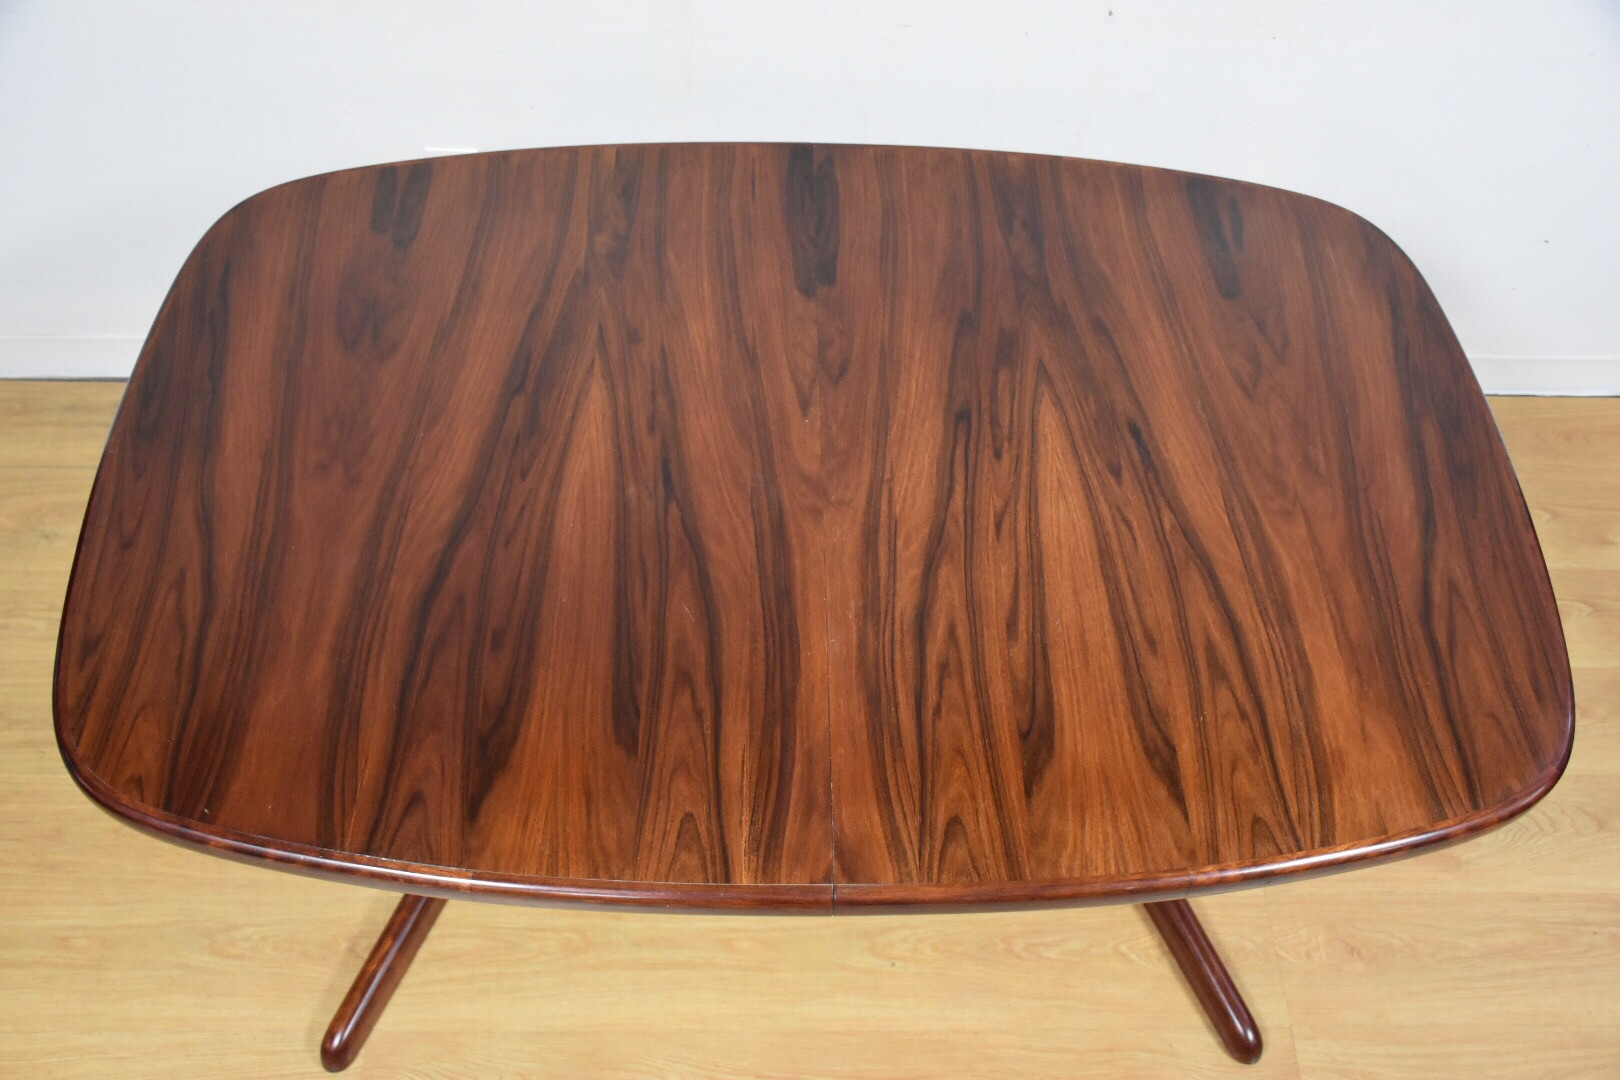 Danish Modern Rosewood Extendable Dining Table Chairish : abd07a91 8932 40c1 9956 5d6d19d0f0b5aspectfitampwidth640ampheight640 from www.chairish.com size 640 x 640 jpeg 35kB